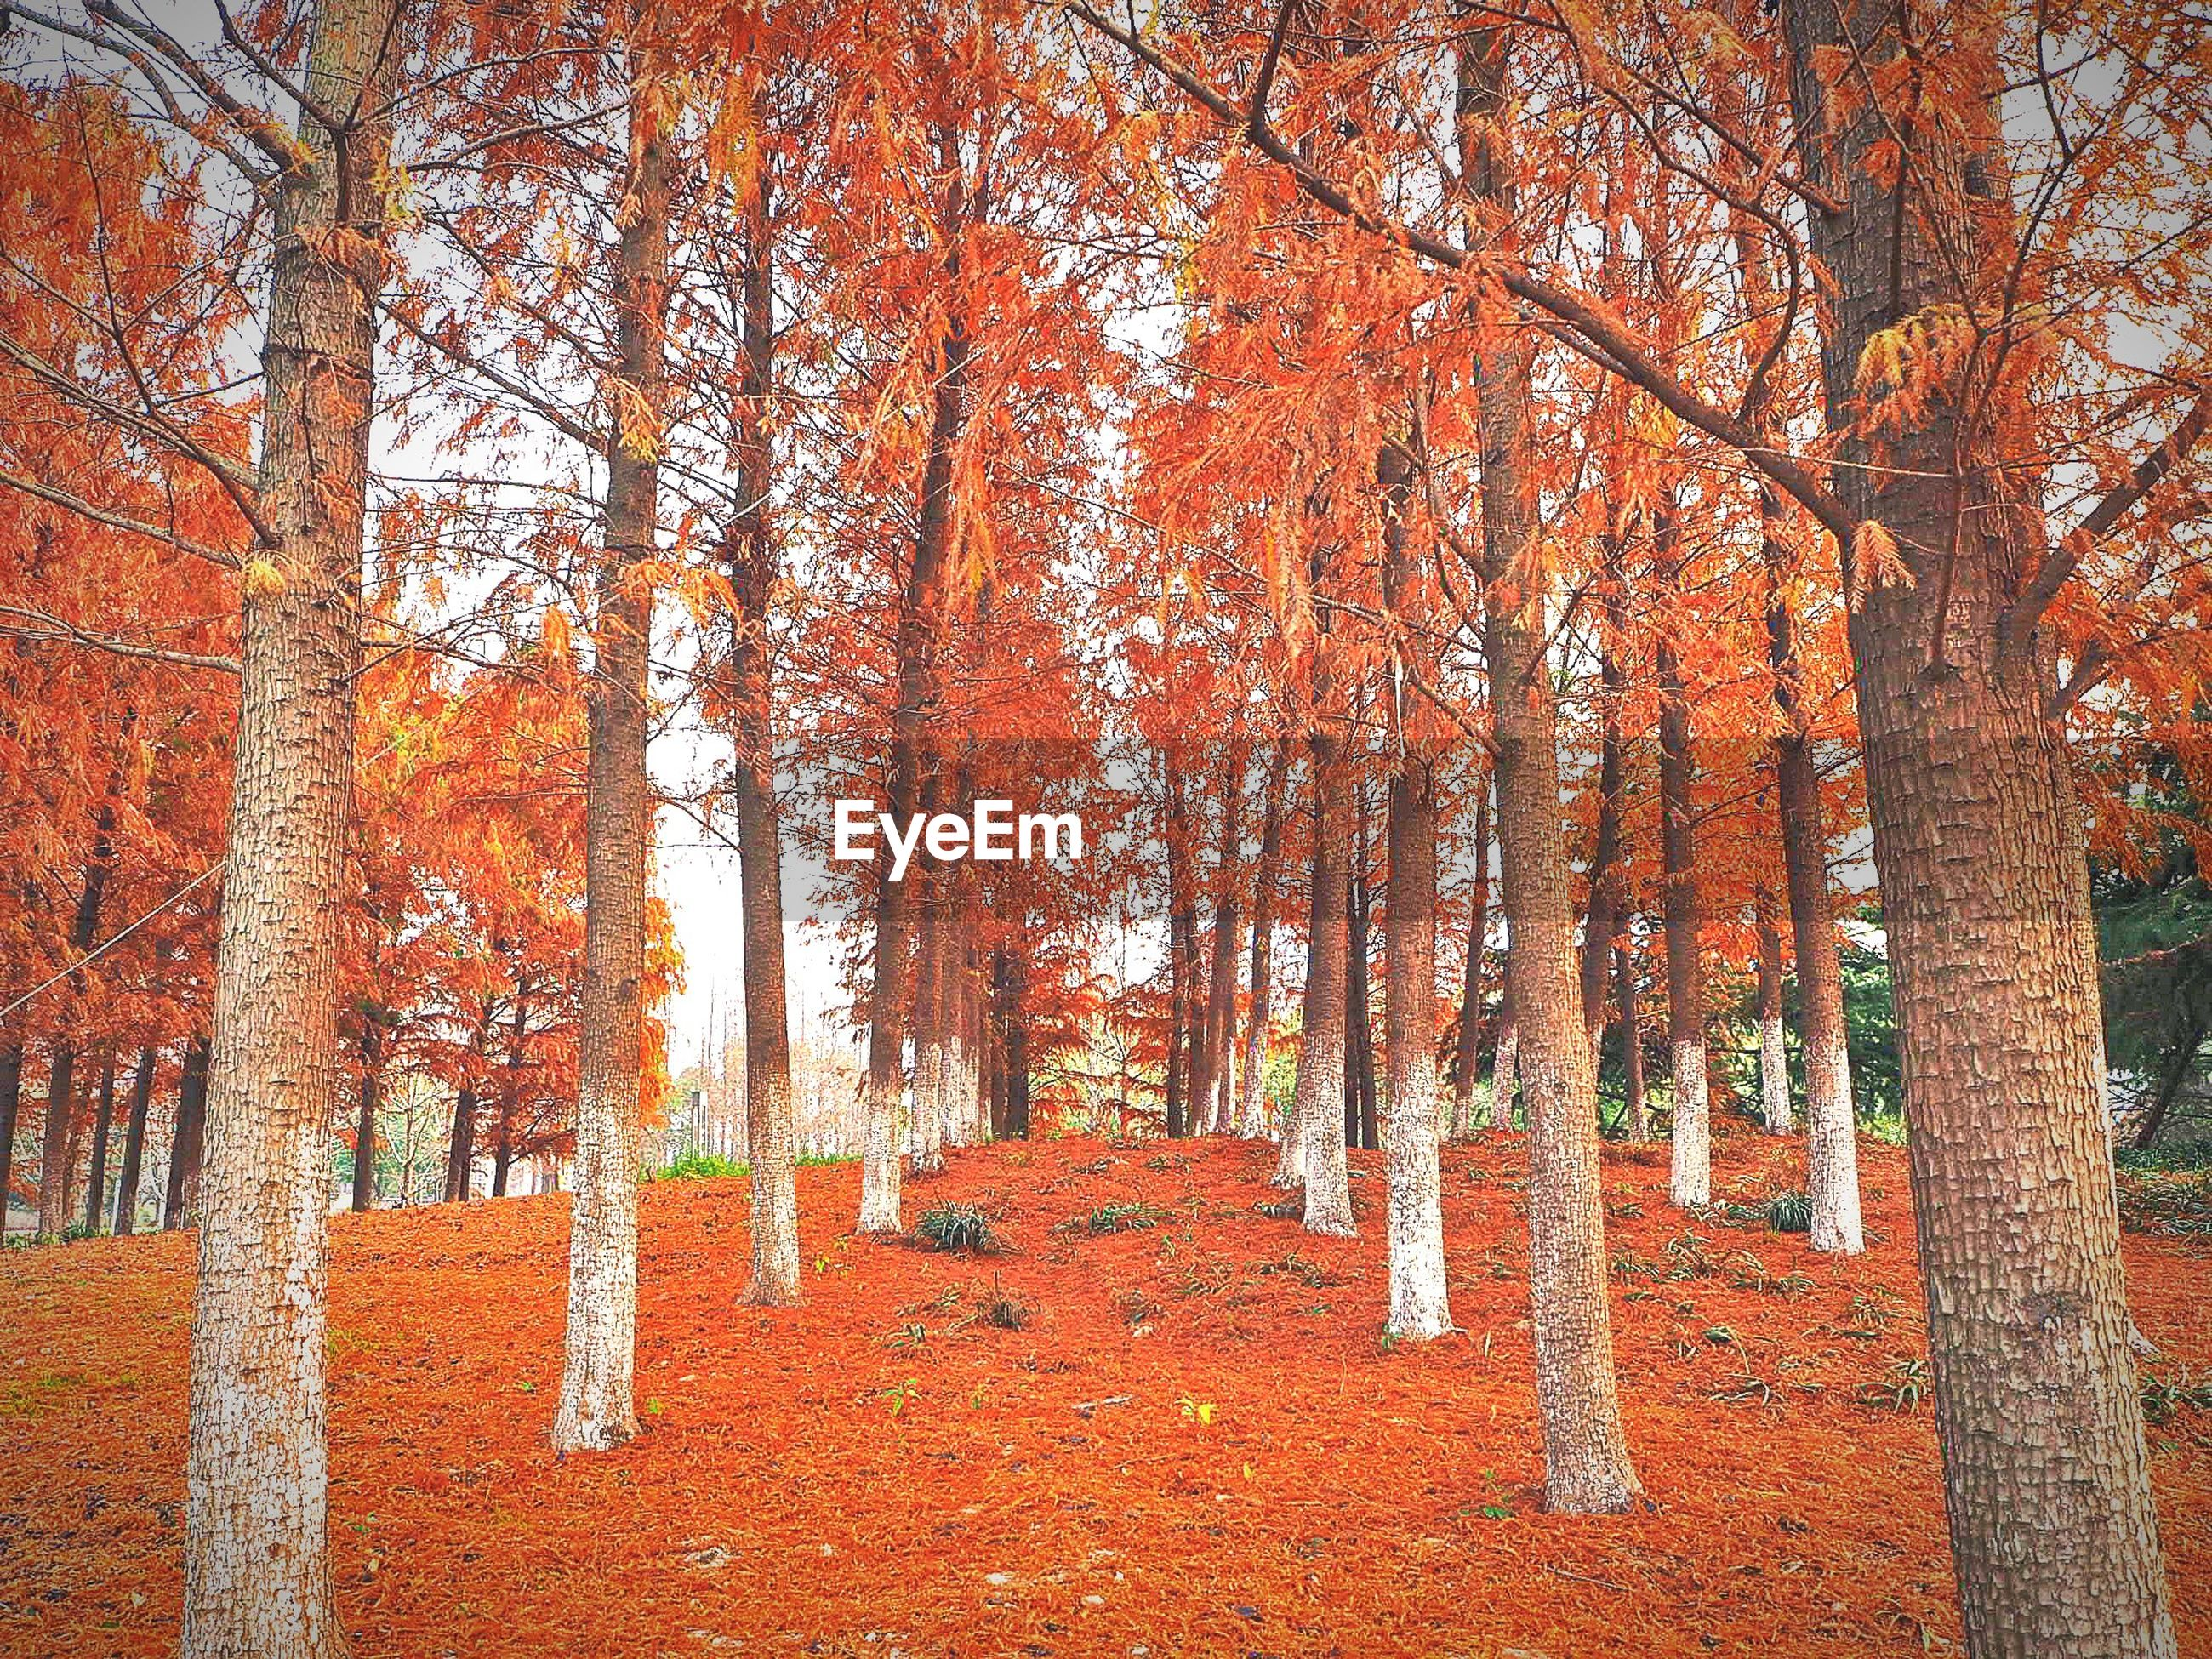 TREES IN FOREST DURING AUTUMN LEAVES